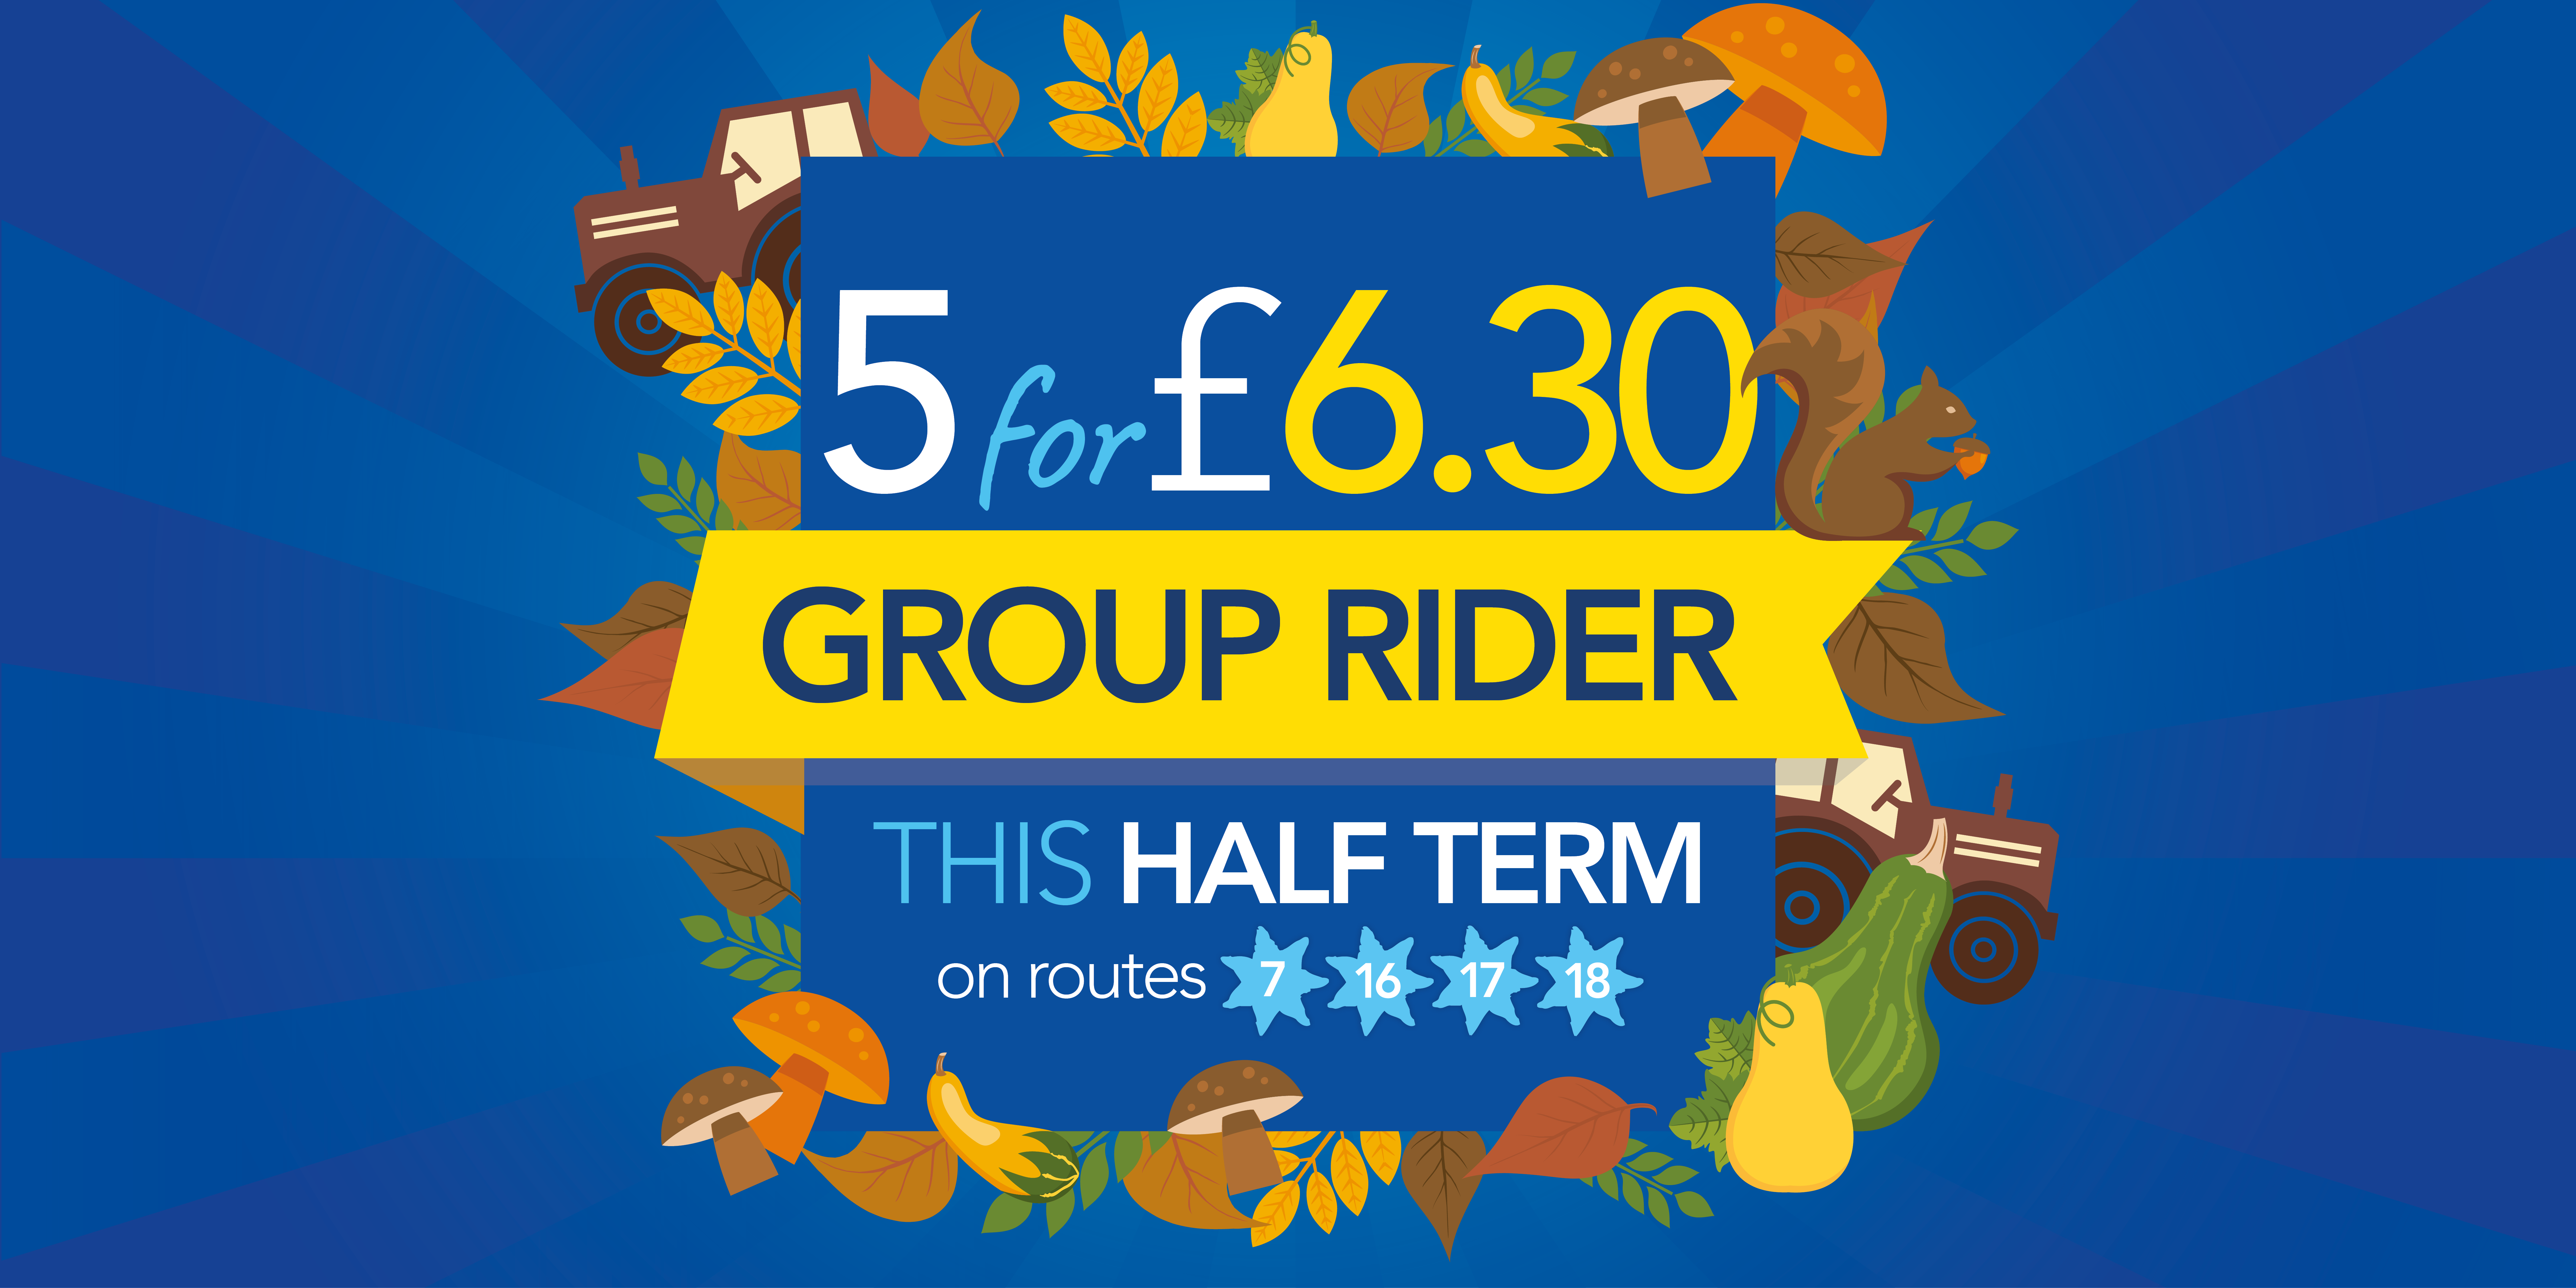 Image saying '5 for £6.30 Group rider this half term on routes 7, 16, 17 and 18'